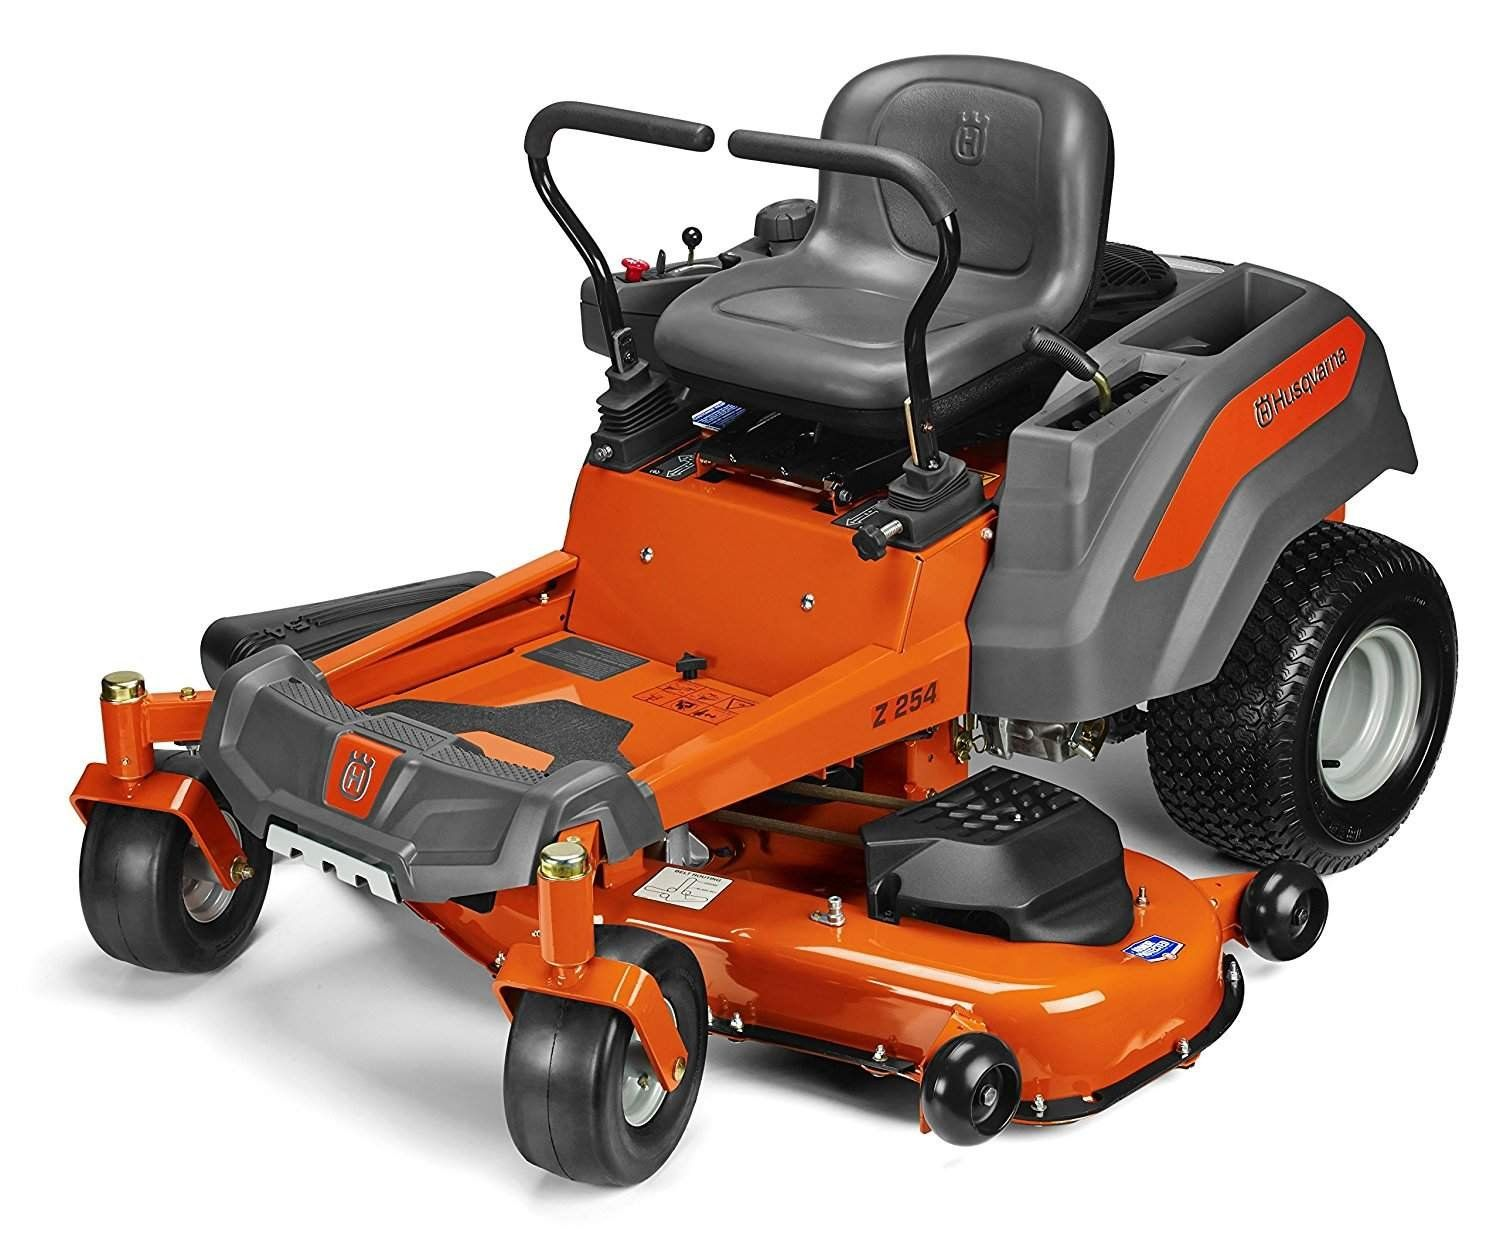 2018 Husqvarna Zero Turn Mowers Wallpaper From Best Zero Turn Mower 2018 Buyer 039 S G Best Riding Lawn Mower Riding Lawn Mowers Craftsman Riding Lawn Mower